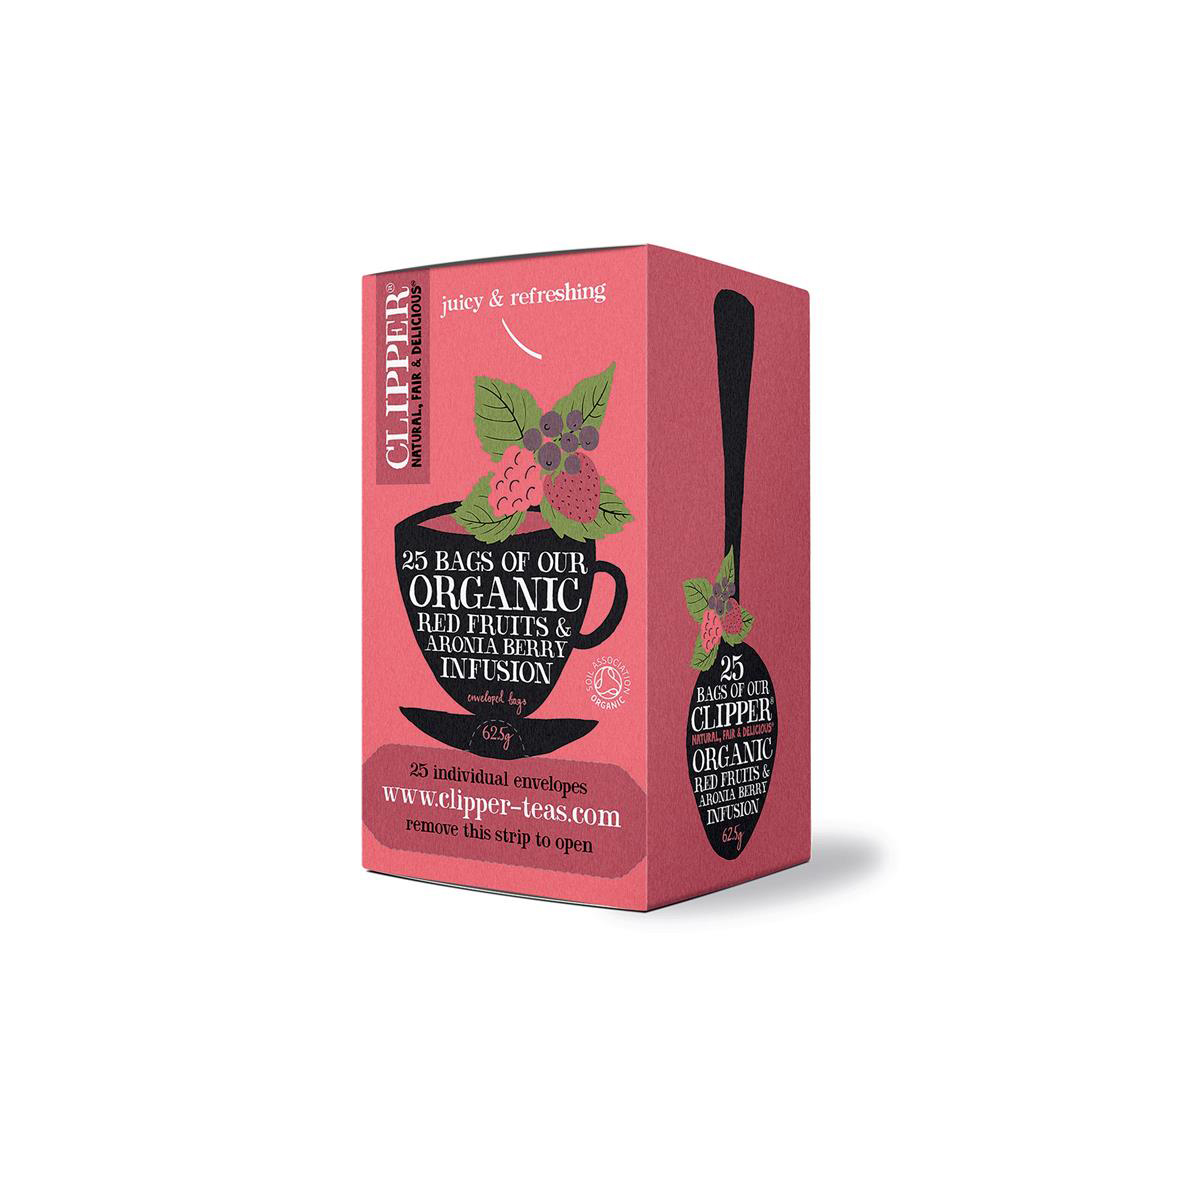 Clipper Organic Red Fruits and Aronia Tea Fairtrade Caffeine-free Teabags Ref 0403266 Pack 25